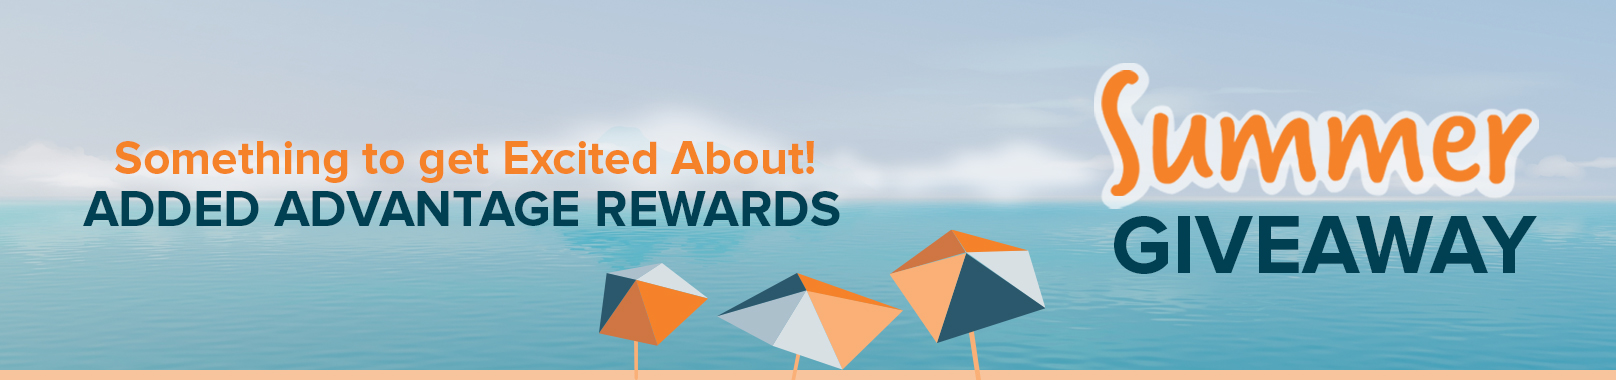 "A blue and orange beach landscape with umbrellas up front and clouds on the horizon. The text overlay reads ""Summer Giveaway: Something to Get Excited About! Added Advantage Rewards"""